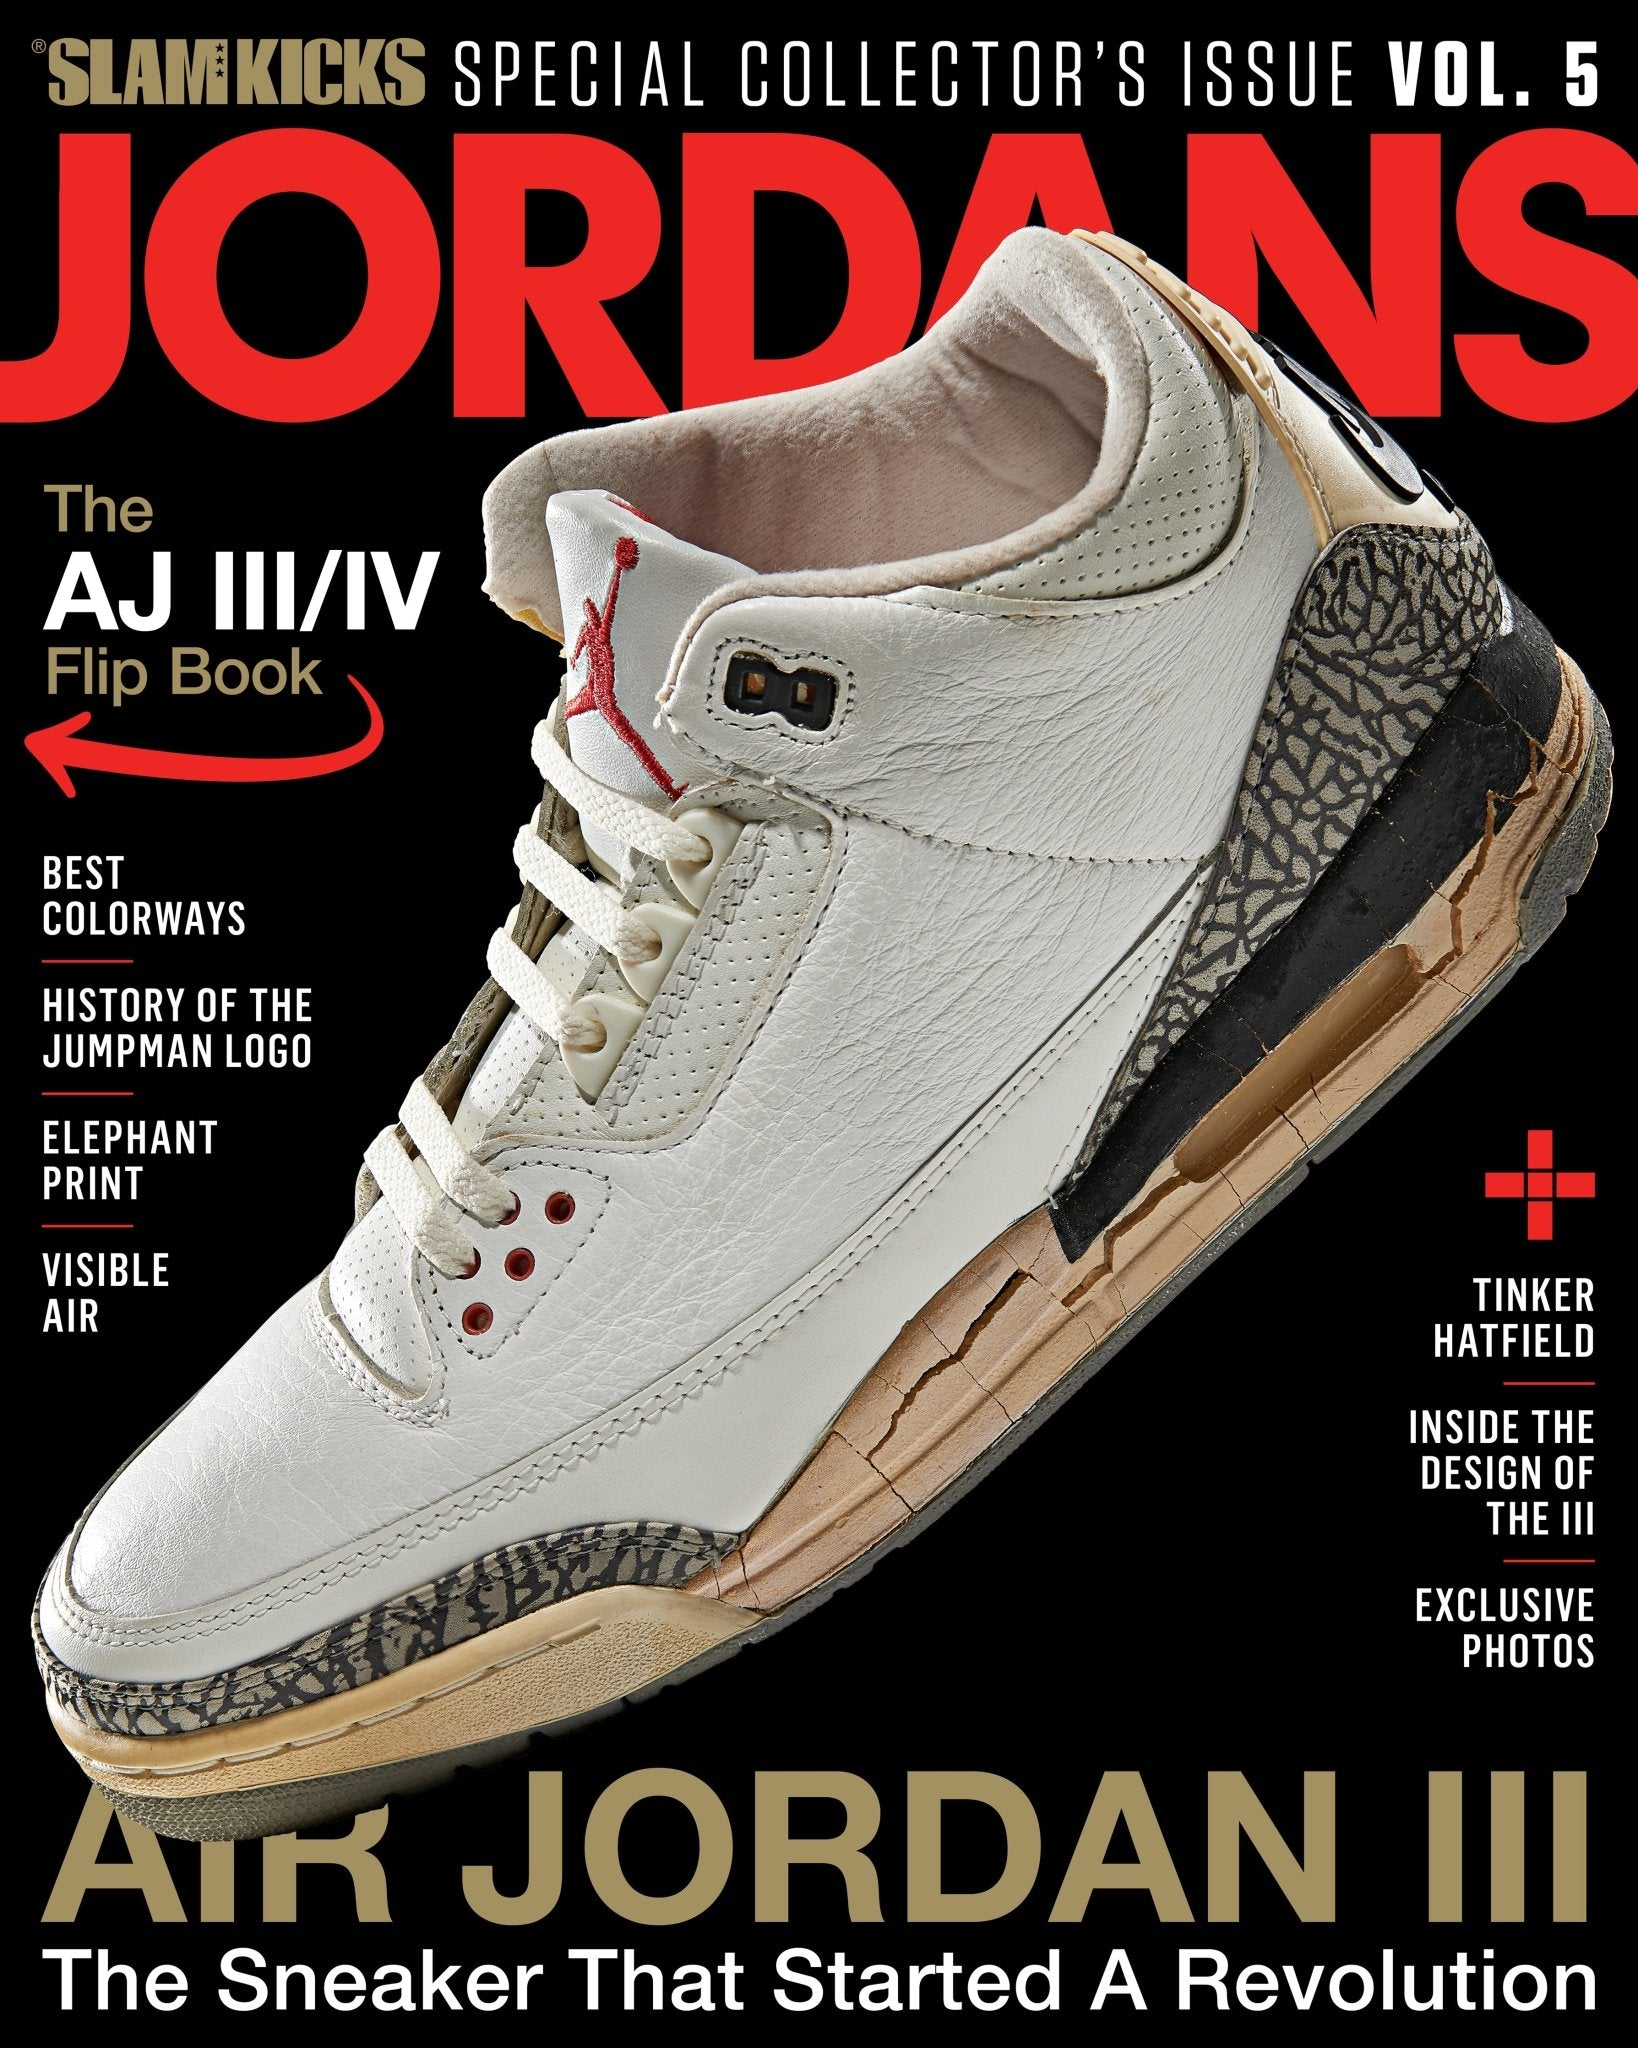 SLAM Kicks: Jordans Vol. 5 - SLAM